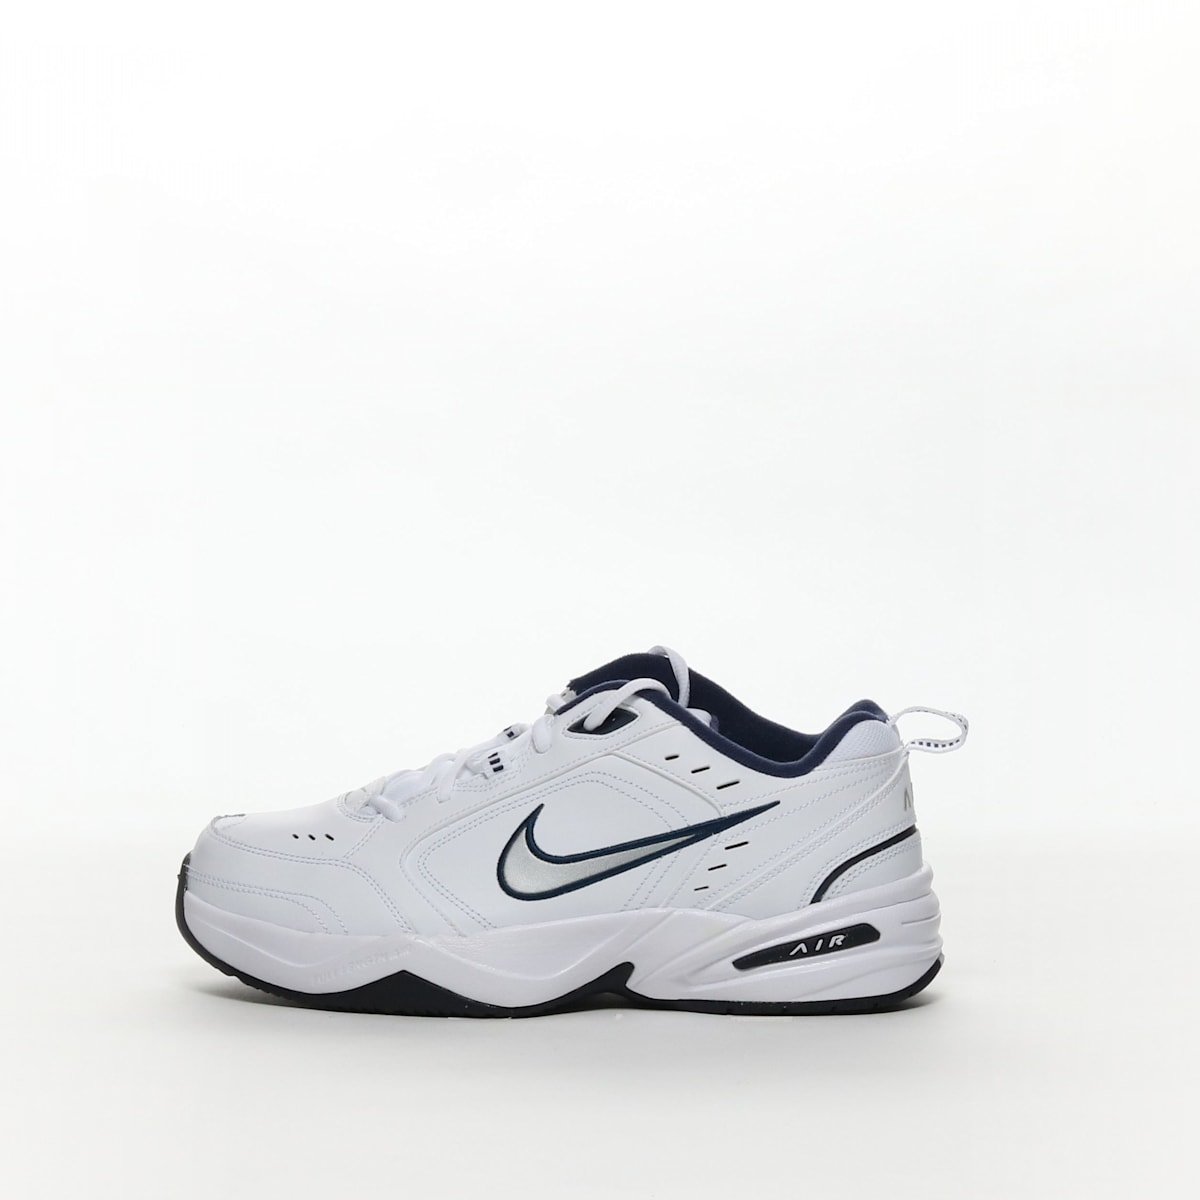 Air monarch iv wide